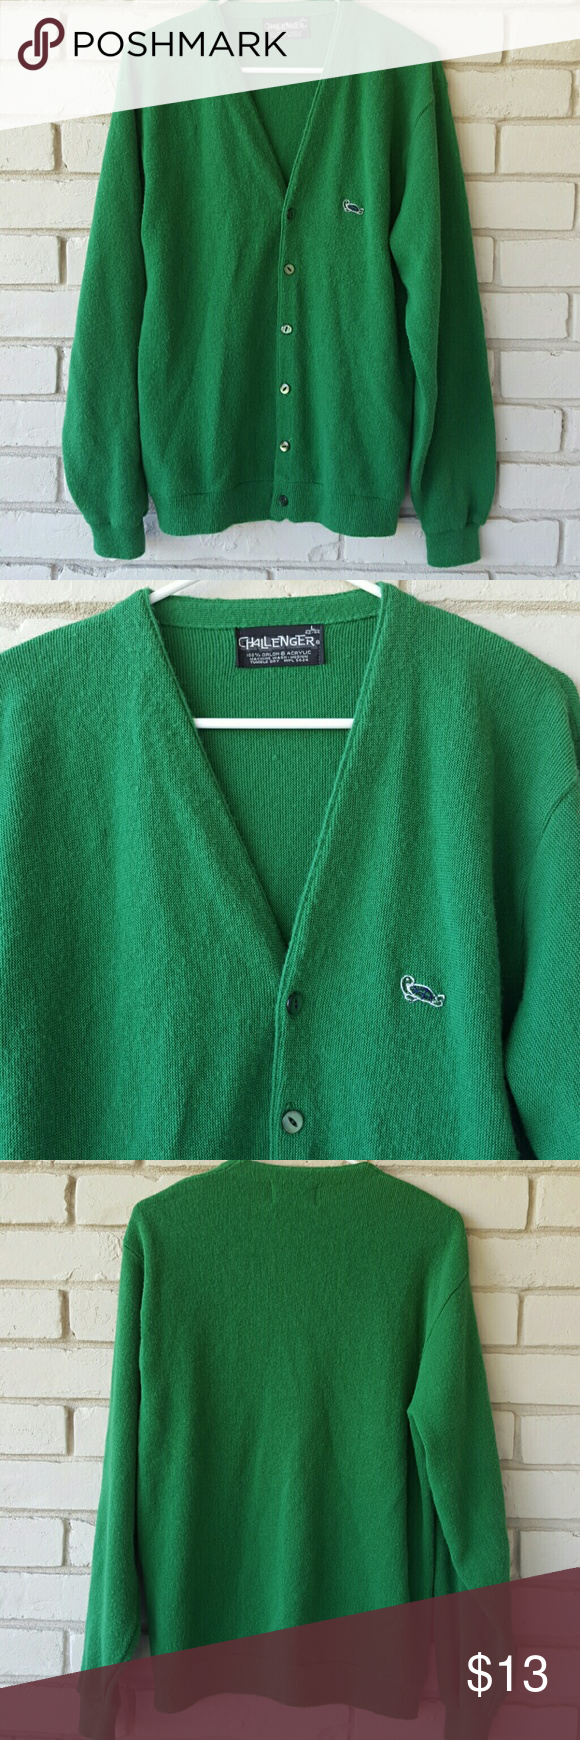 Vintage Men's Challenger cardigan Great condition. Size L Challenger Sweaters Cardigan